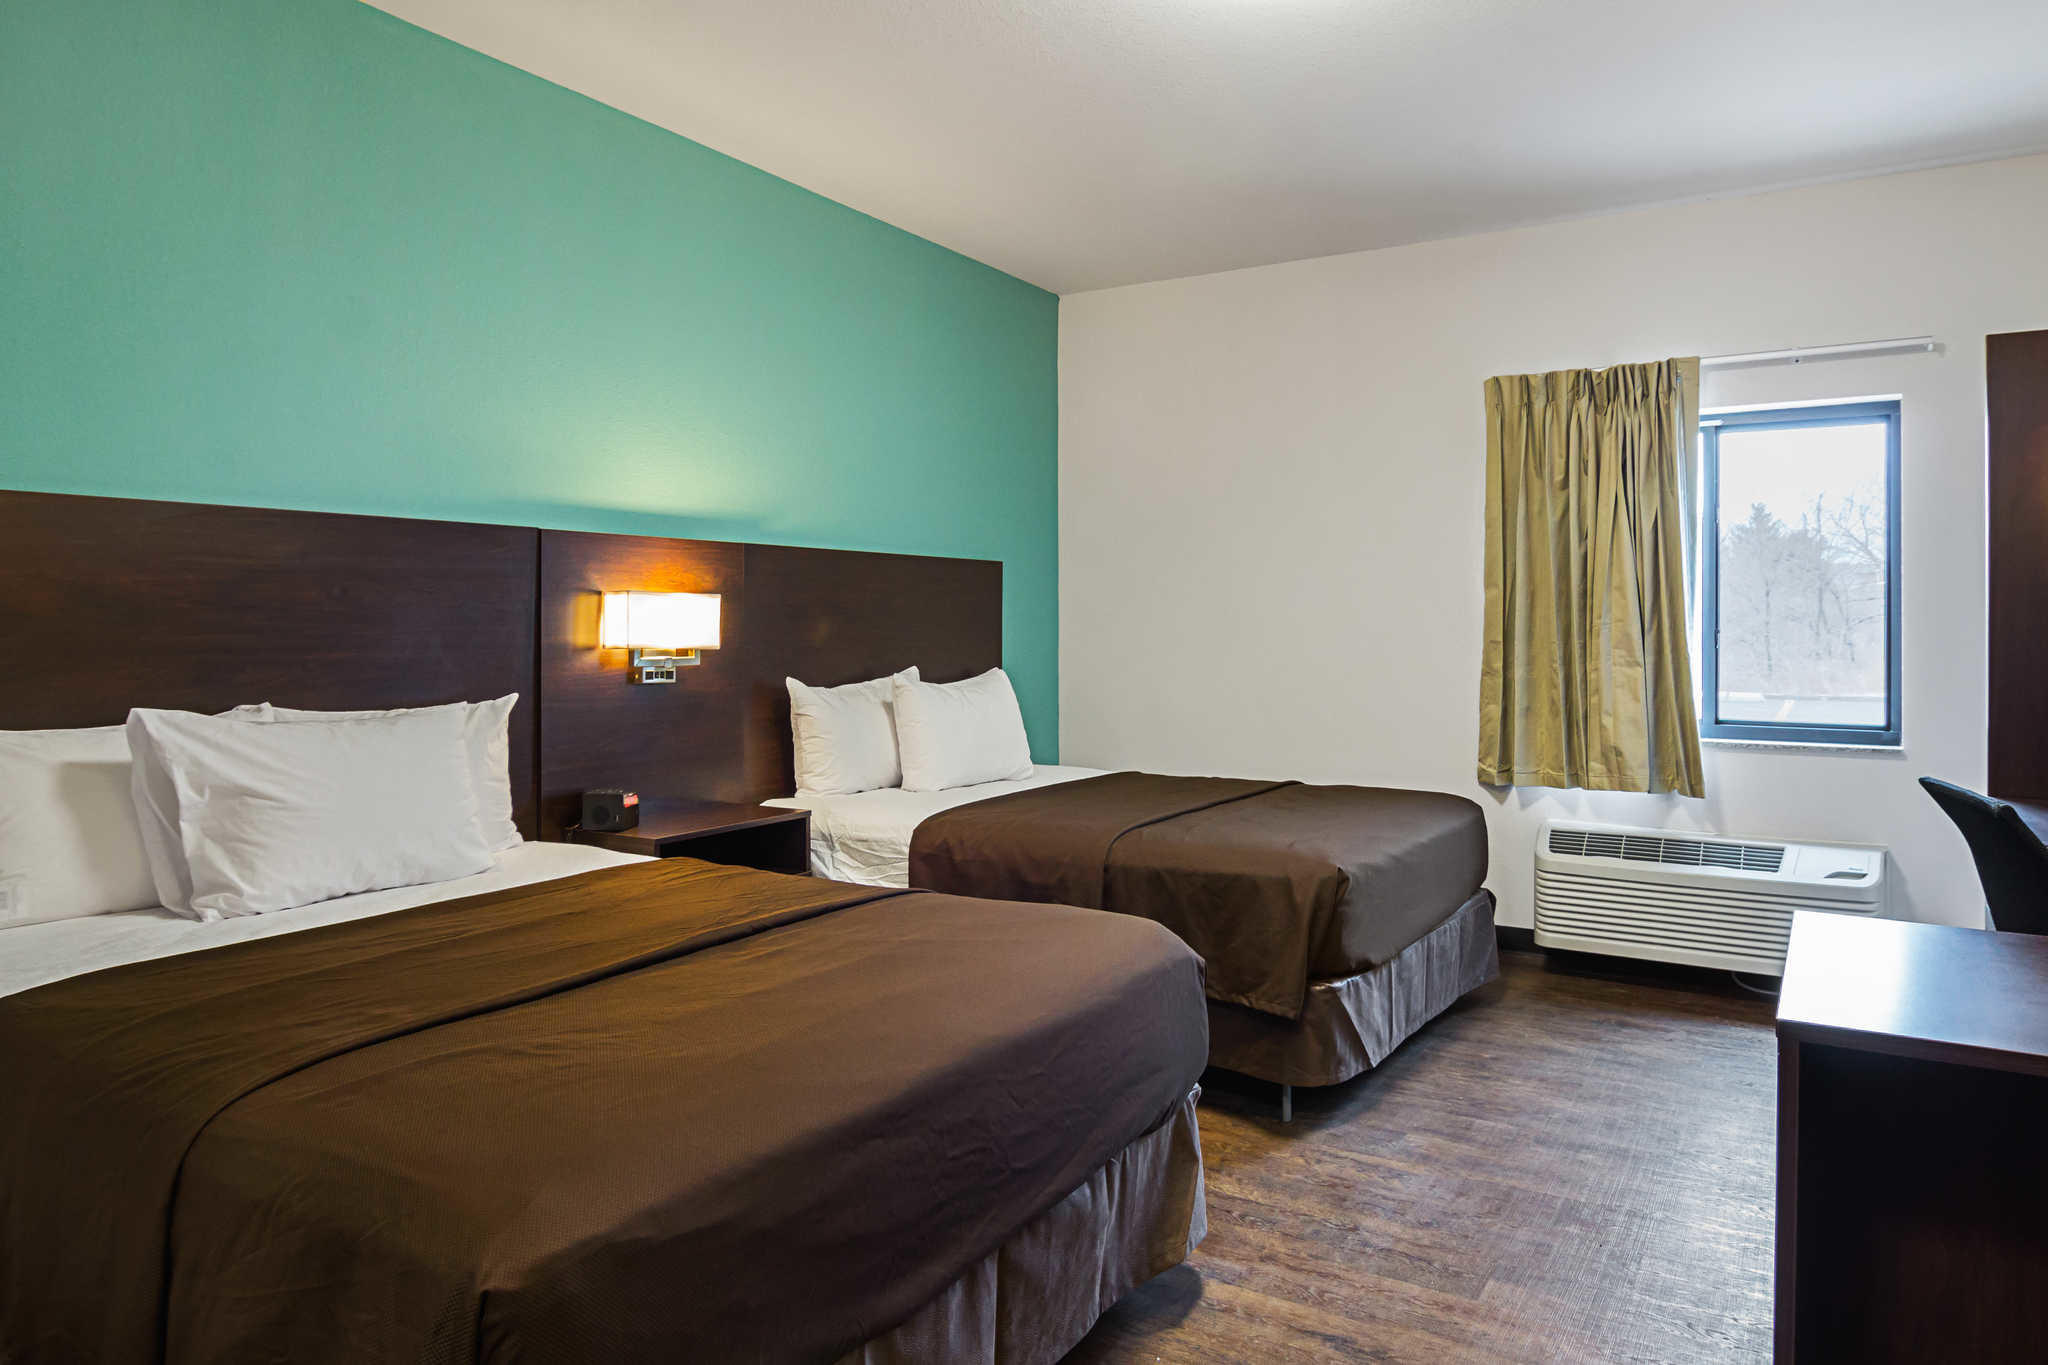 Suburban Extended Stay Hotel image 37